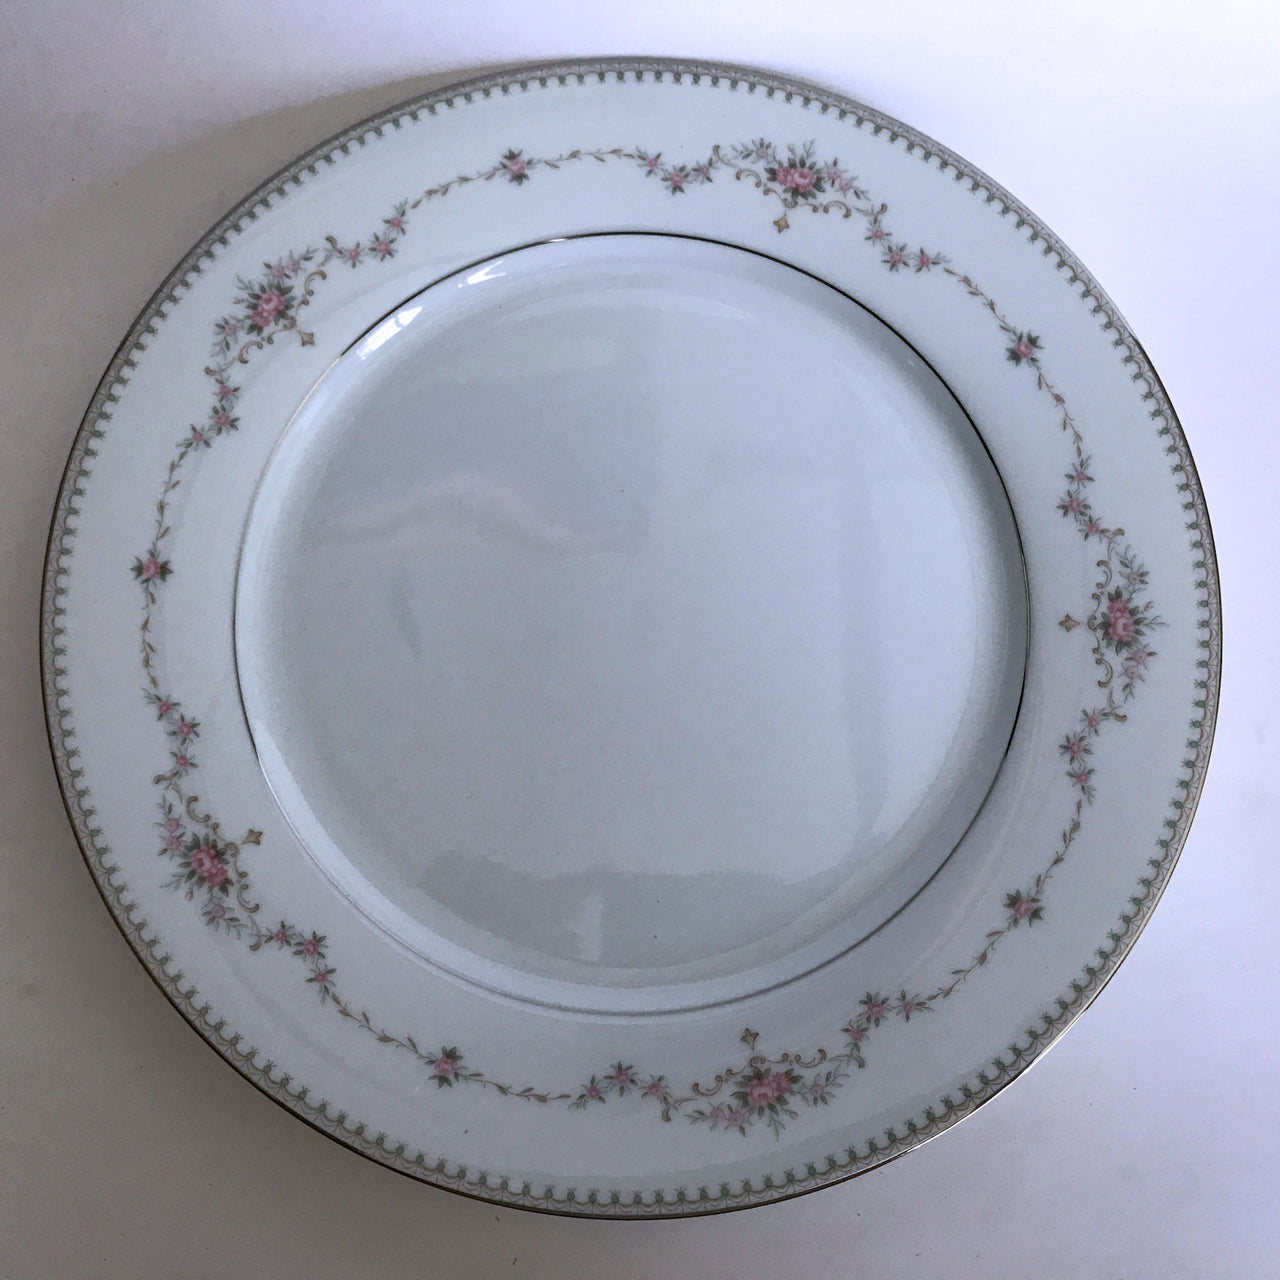 Vintage Noritake Fairmont 6102 Dinner Plate Pink Flower Green Dots Platinum Trim